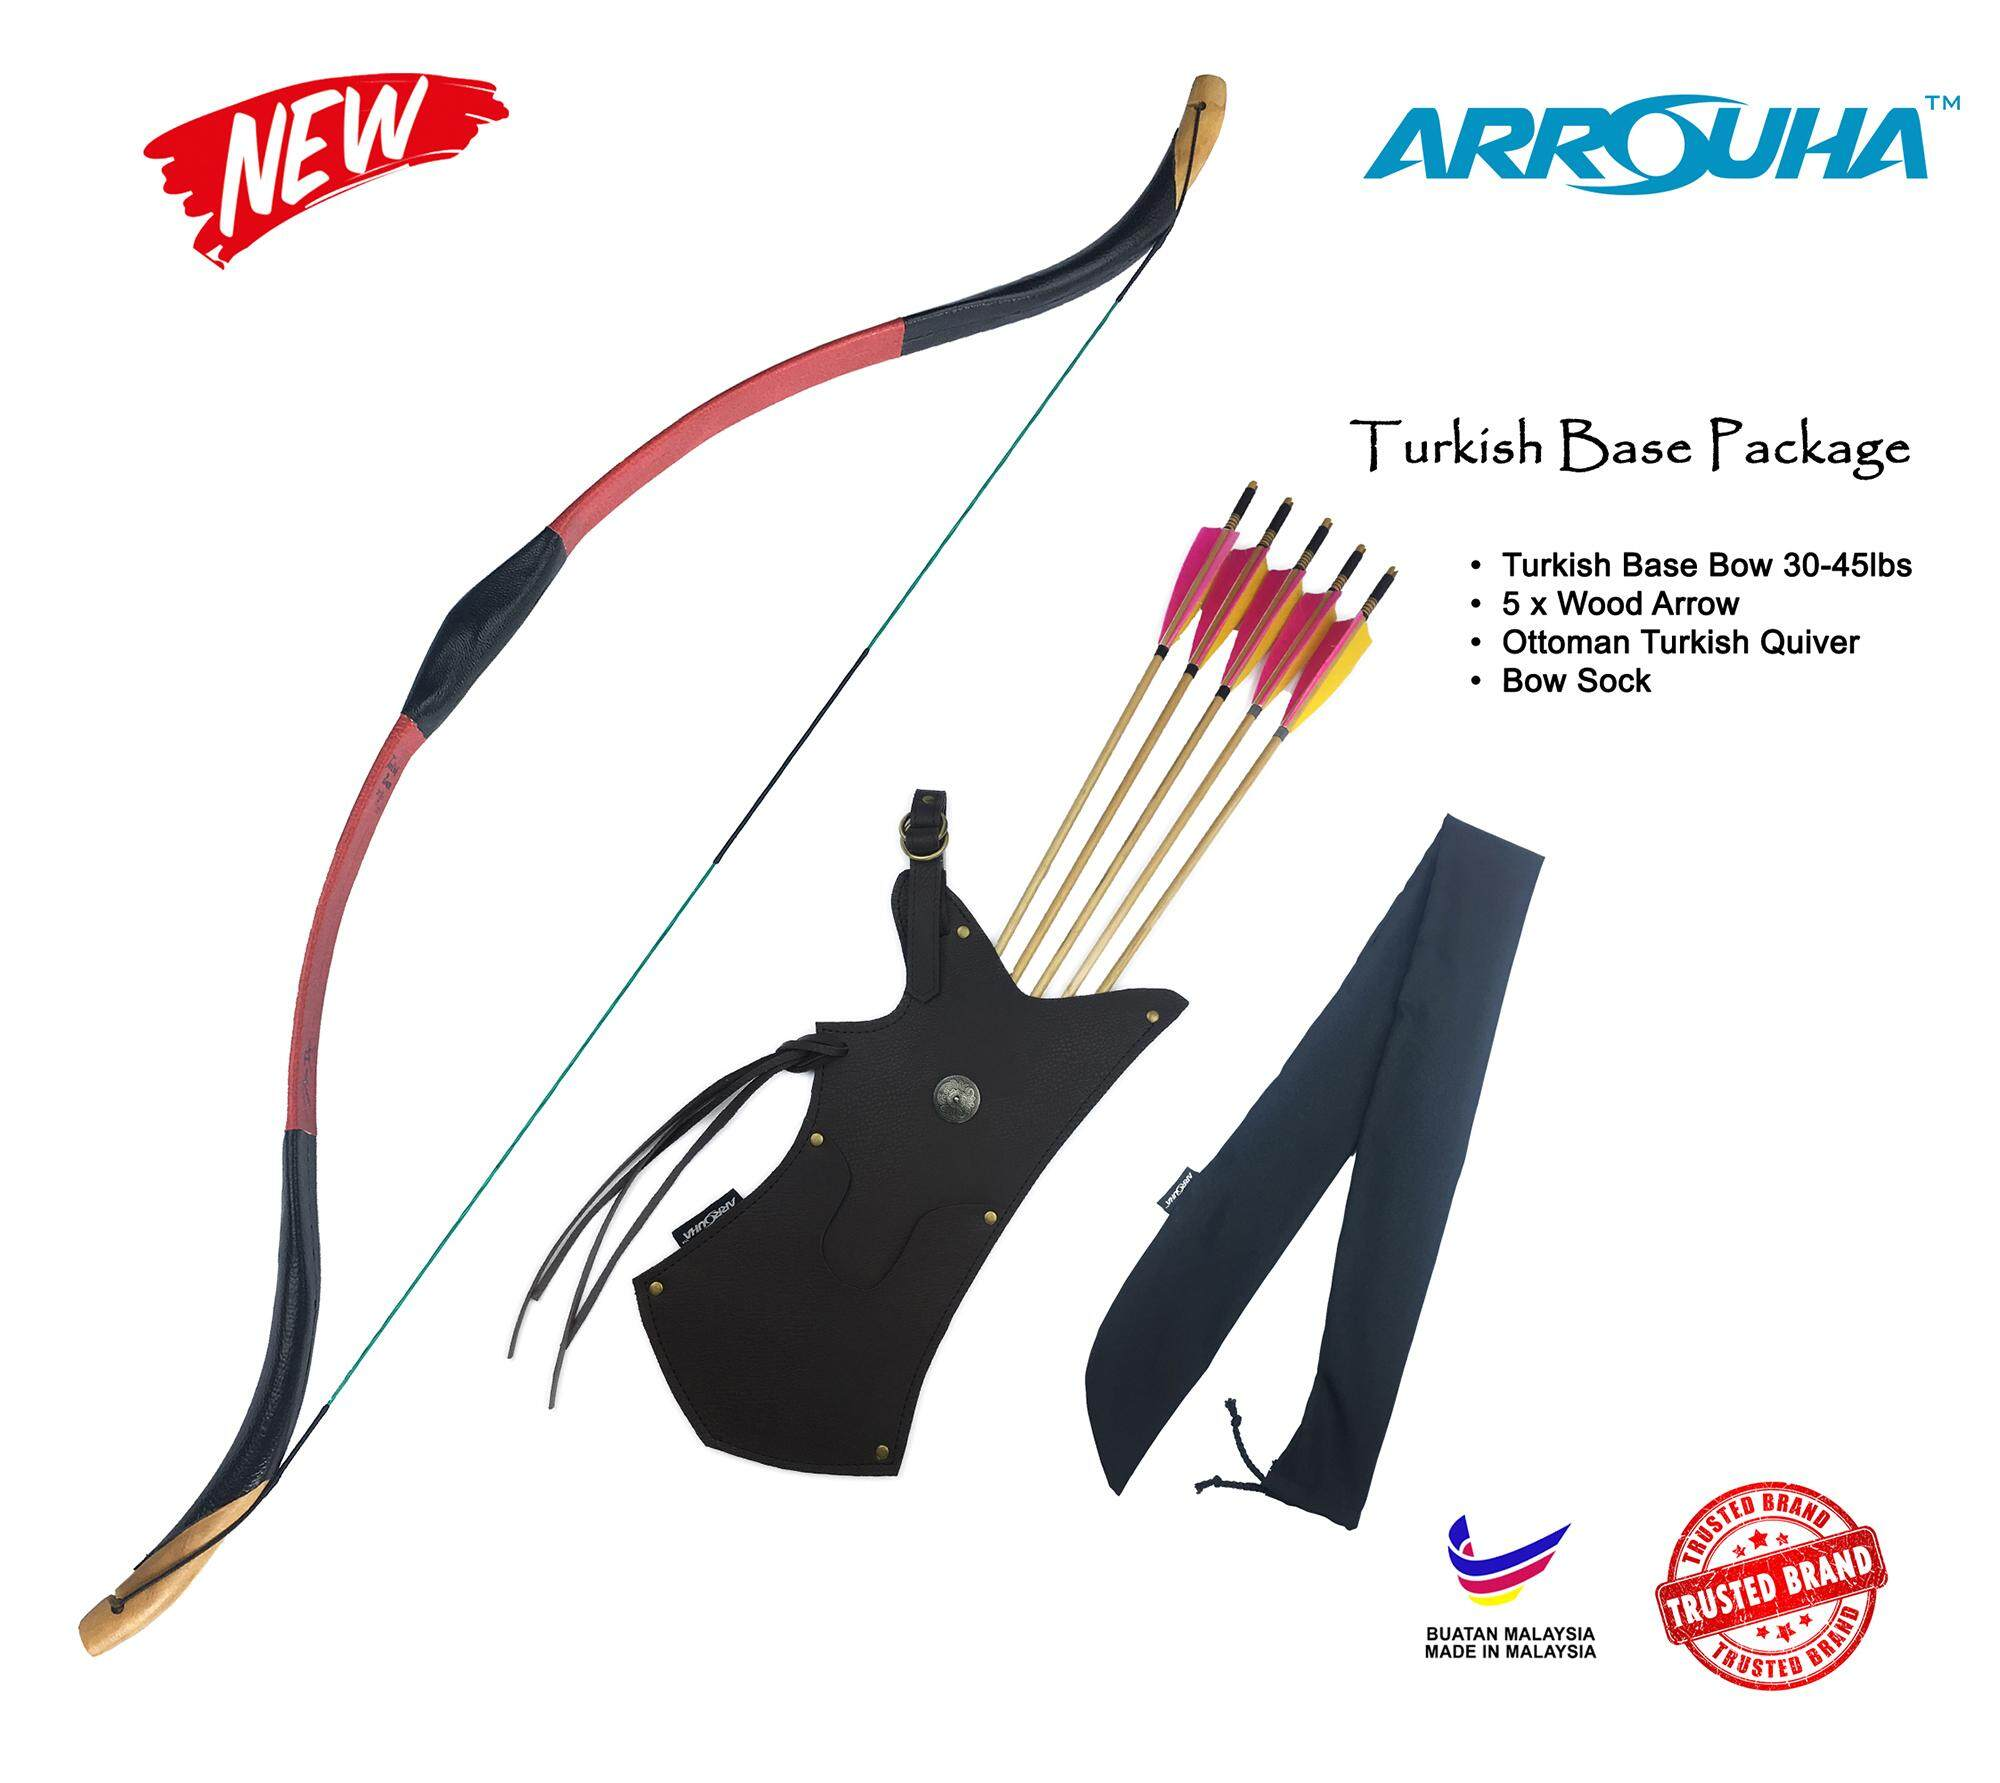 Turkish Base package RM645.jpg